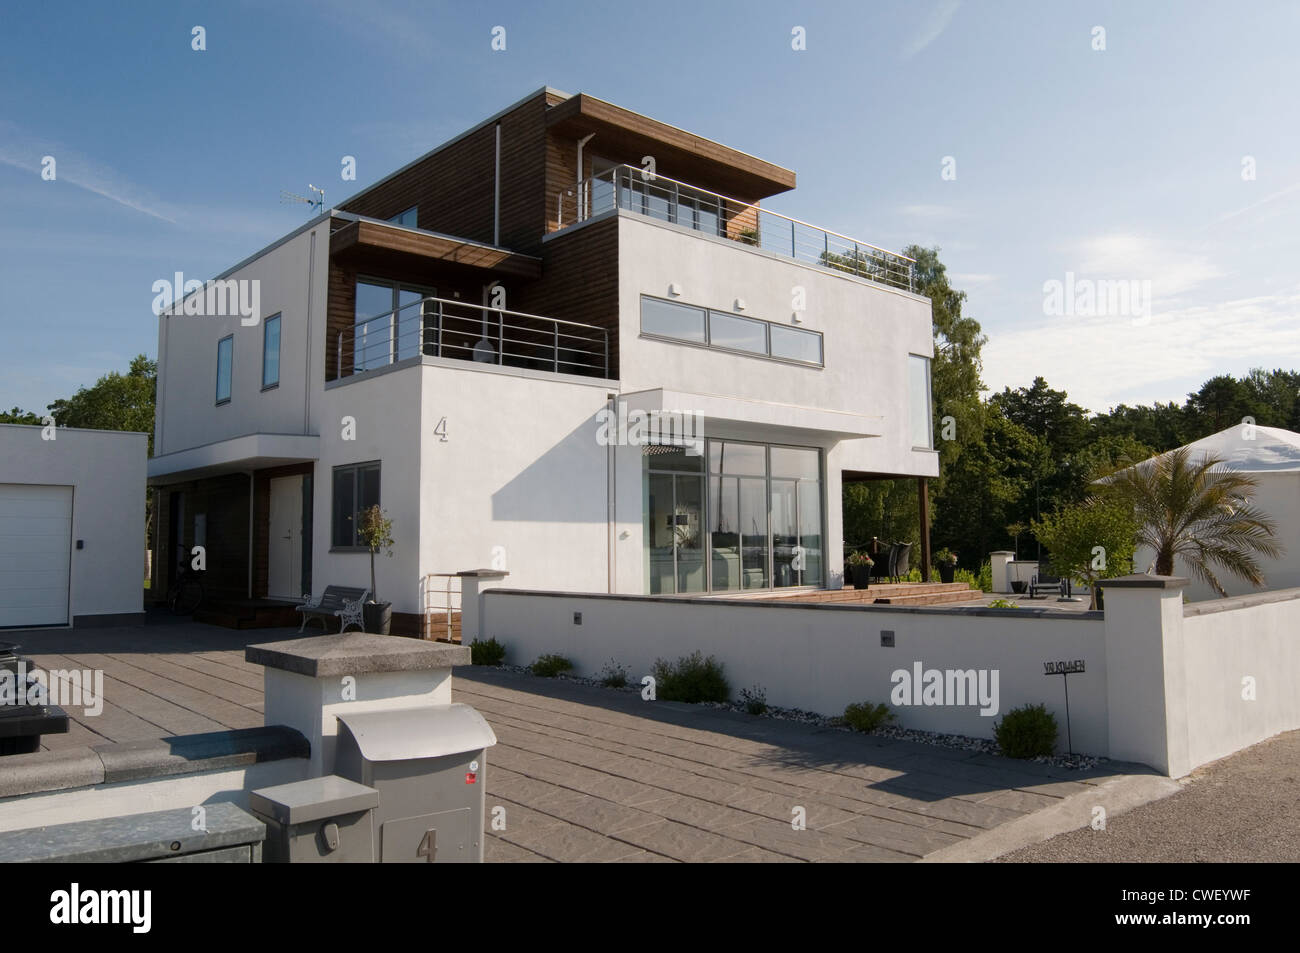 Modern Swedish House Houses Home Homes Minimalist Building Grand Stock Photo Royalty Free Image